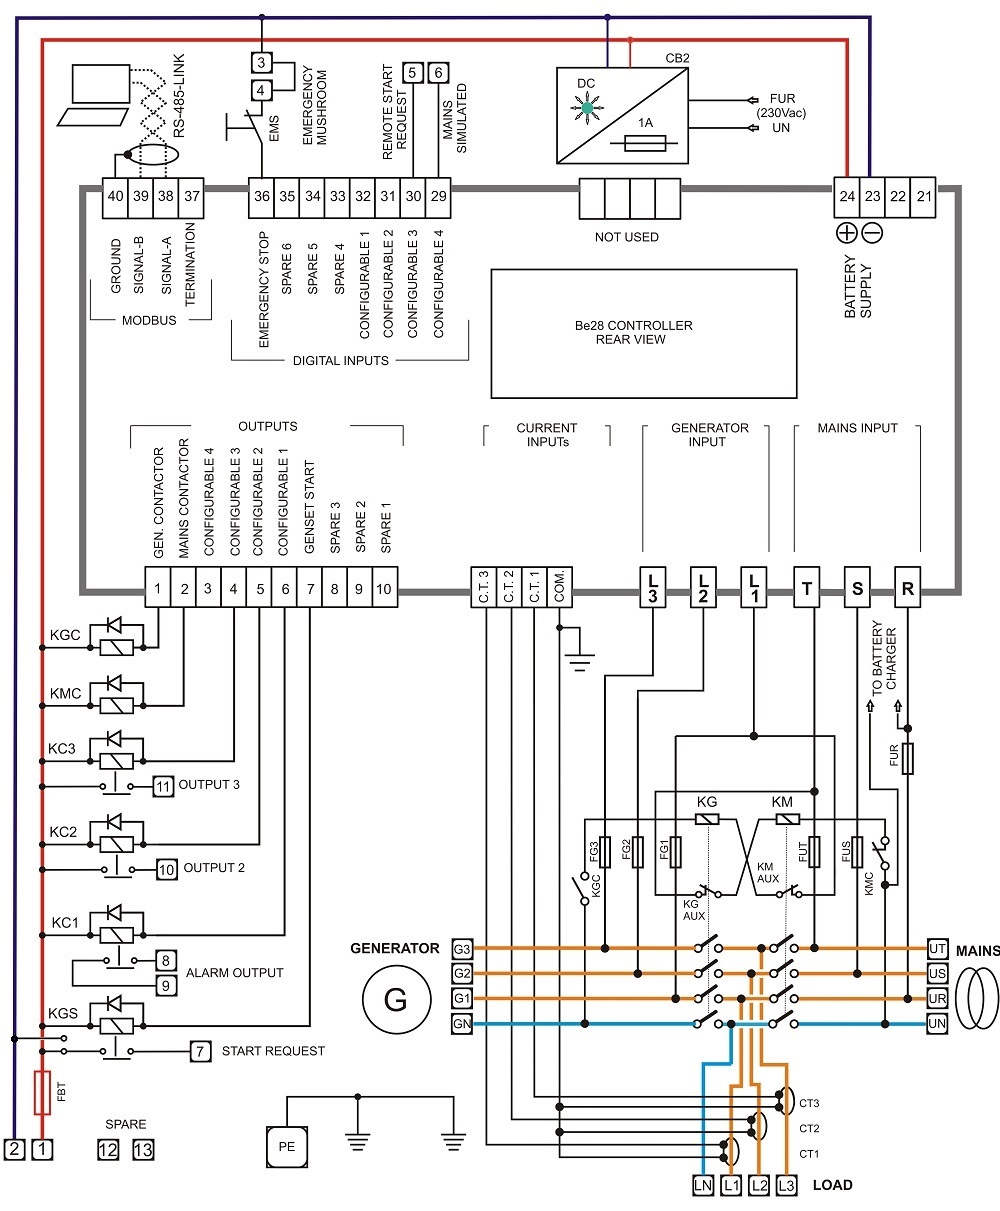 plc panel wiring video schematics online Wiring Schematic Symbols